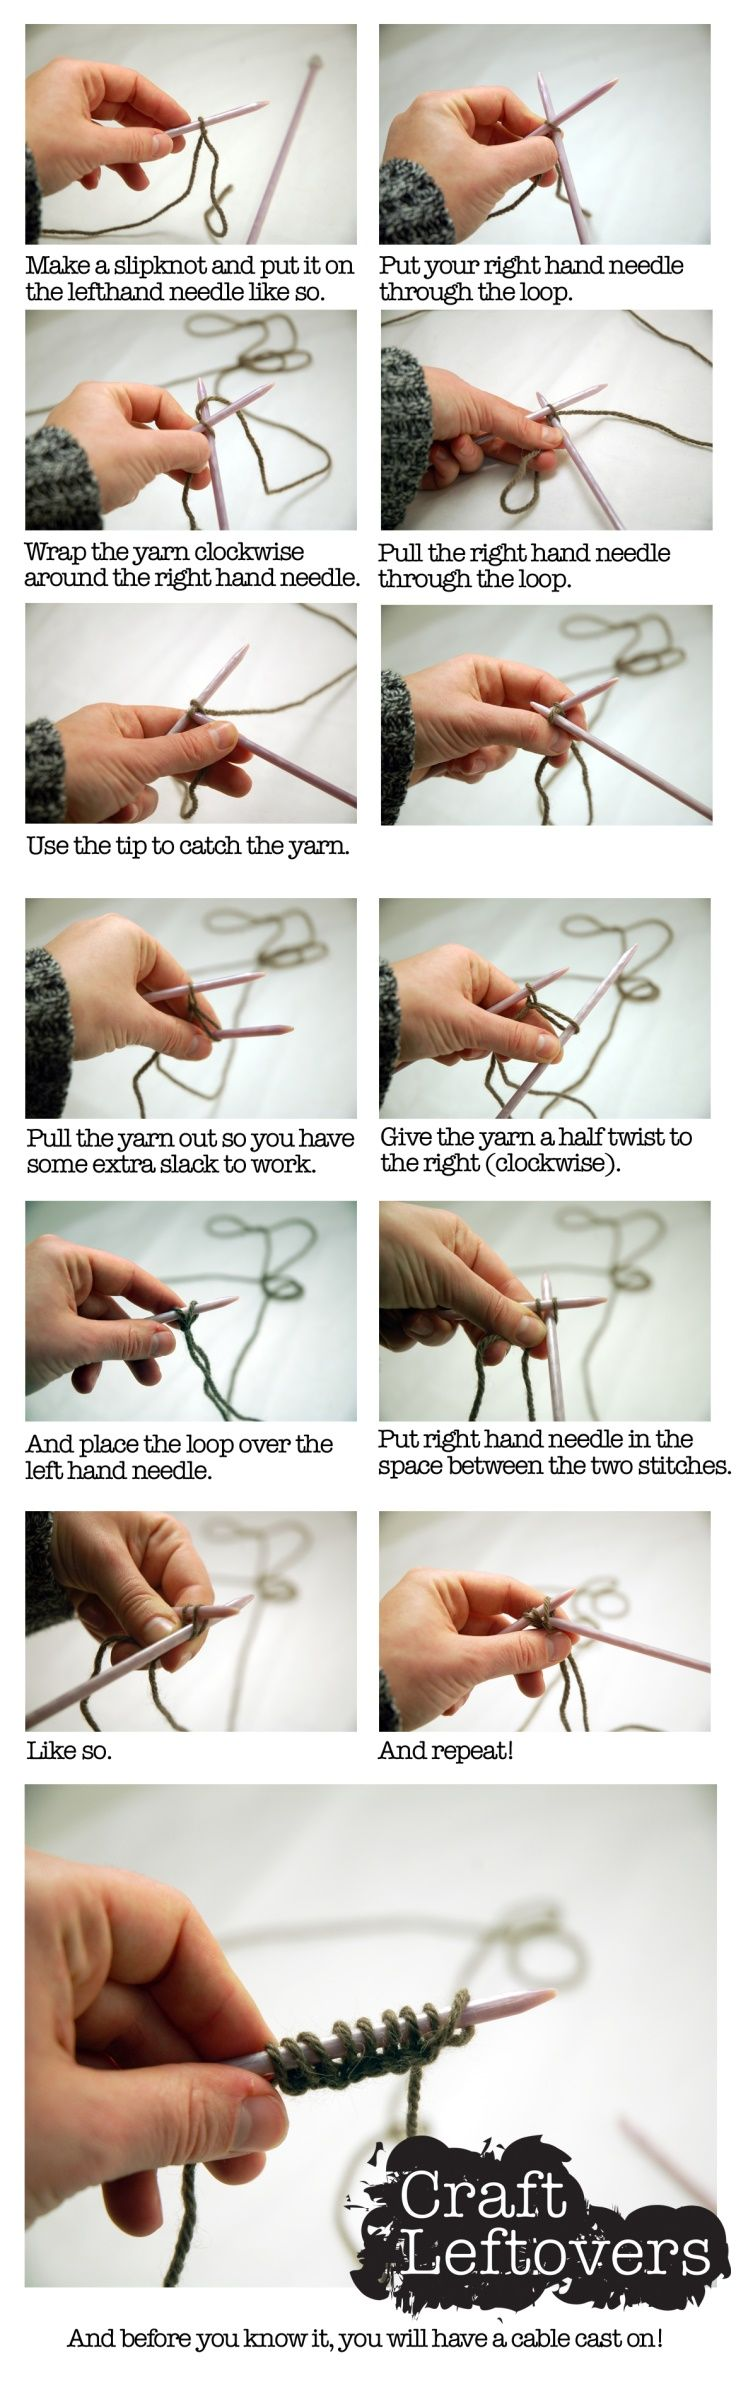 Knitting Casting Off Tutorial : Best cast on bind off staway and knit